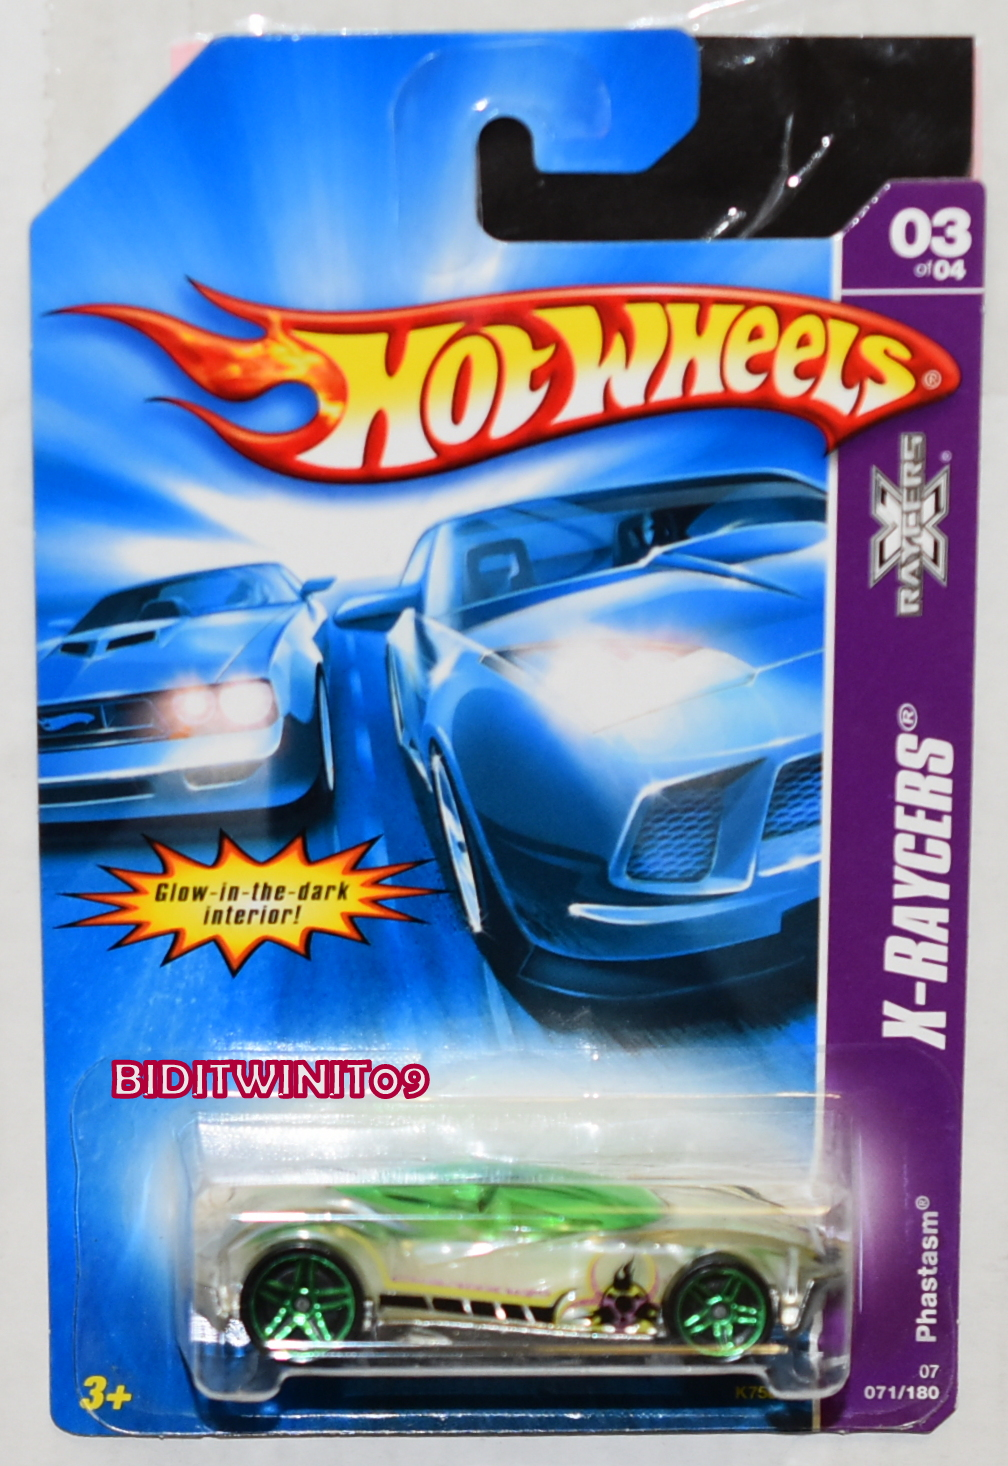 HOT WHEELS 2007 X-RAYCERS PHASTASM #03/04 GREEN